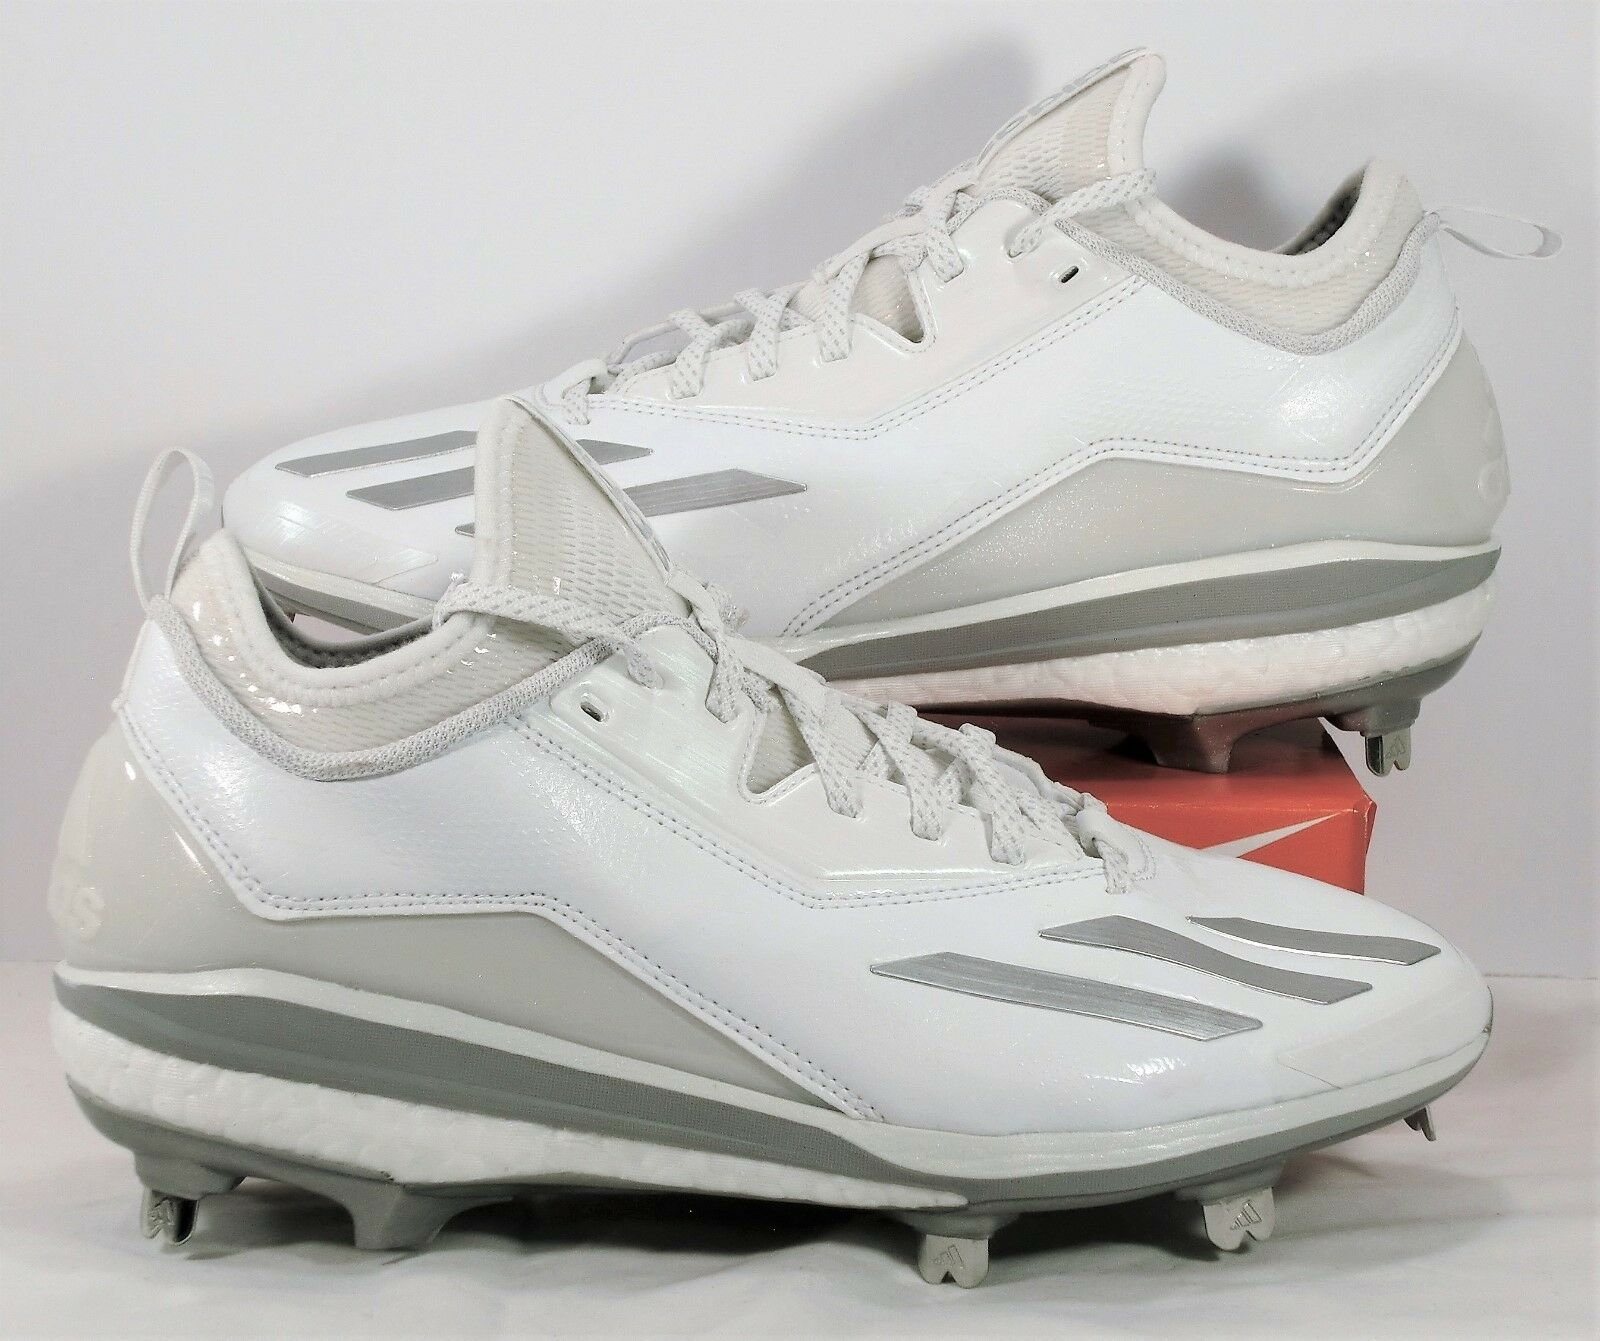 Adidas Energy Boost Icon 2 White Silver Metal Baseball Cleats Sz 8.5 NEW Q16532